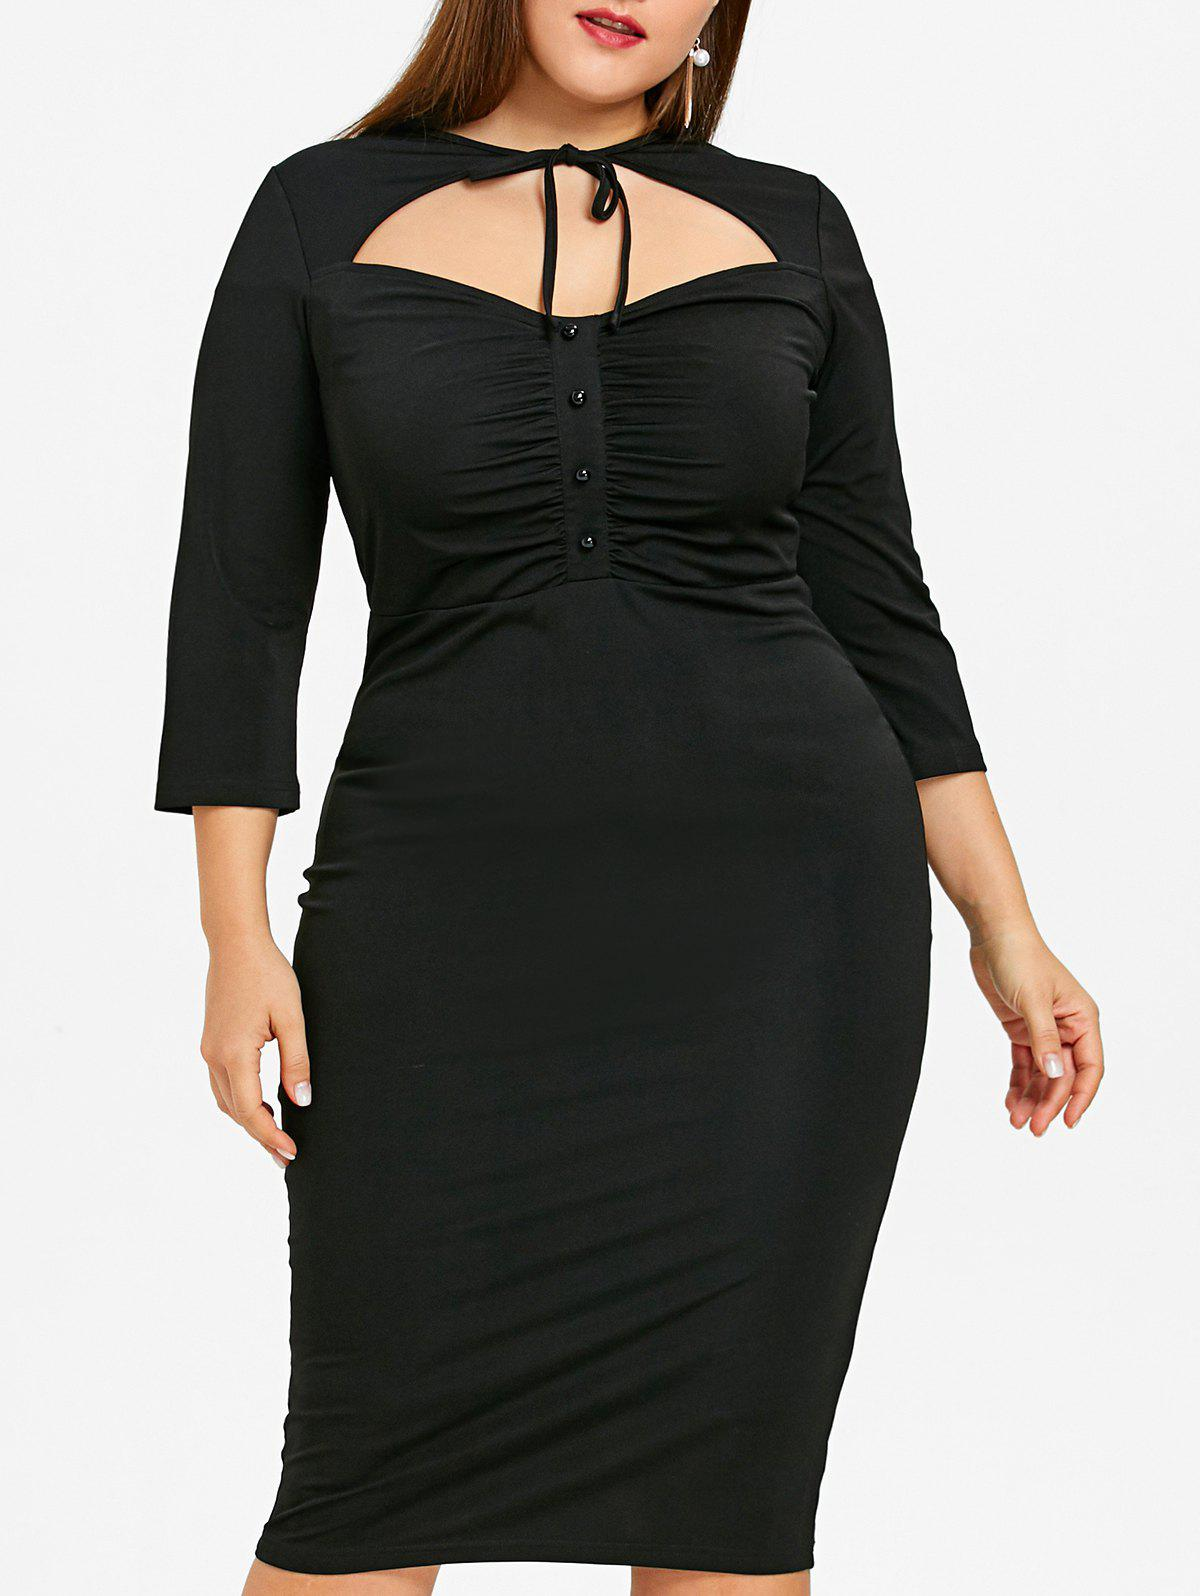 Discount Cut Out Plus Size High Waist Bodycon Dress